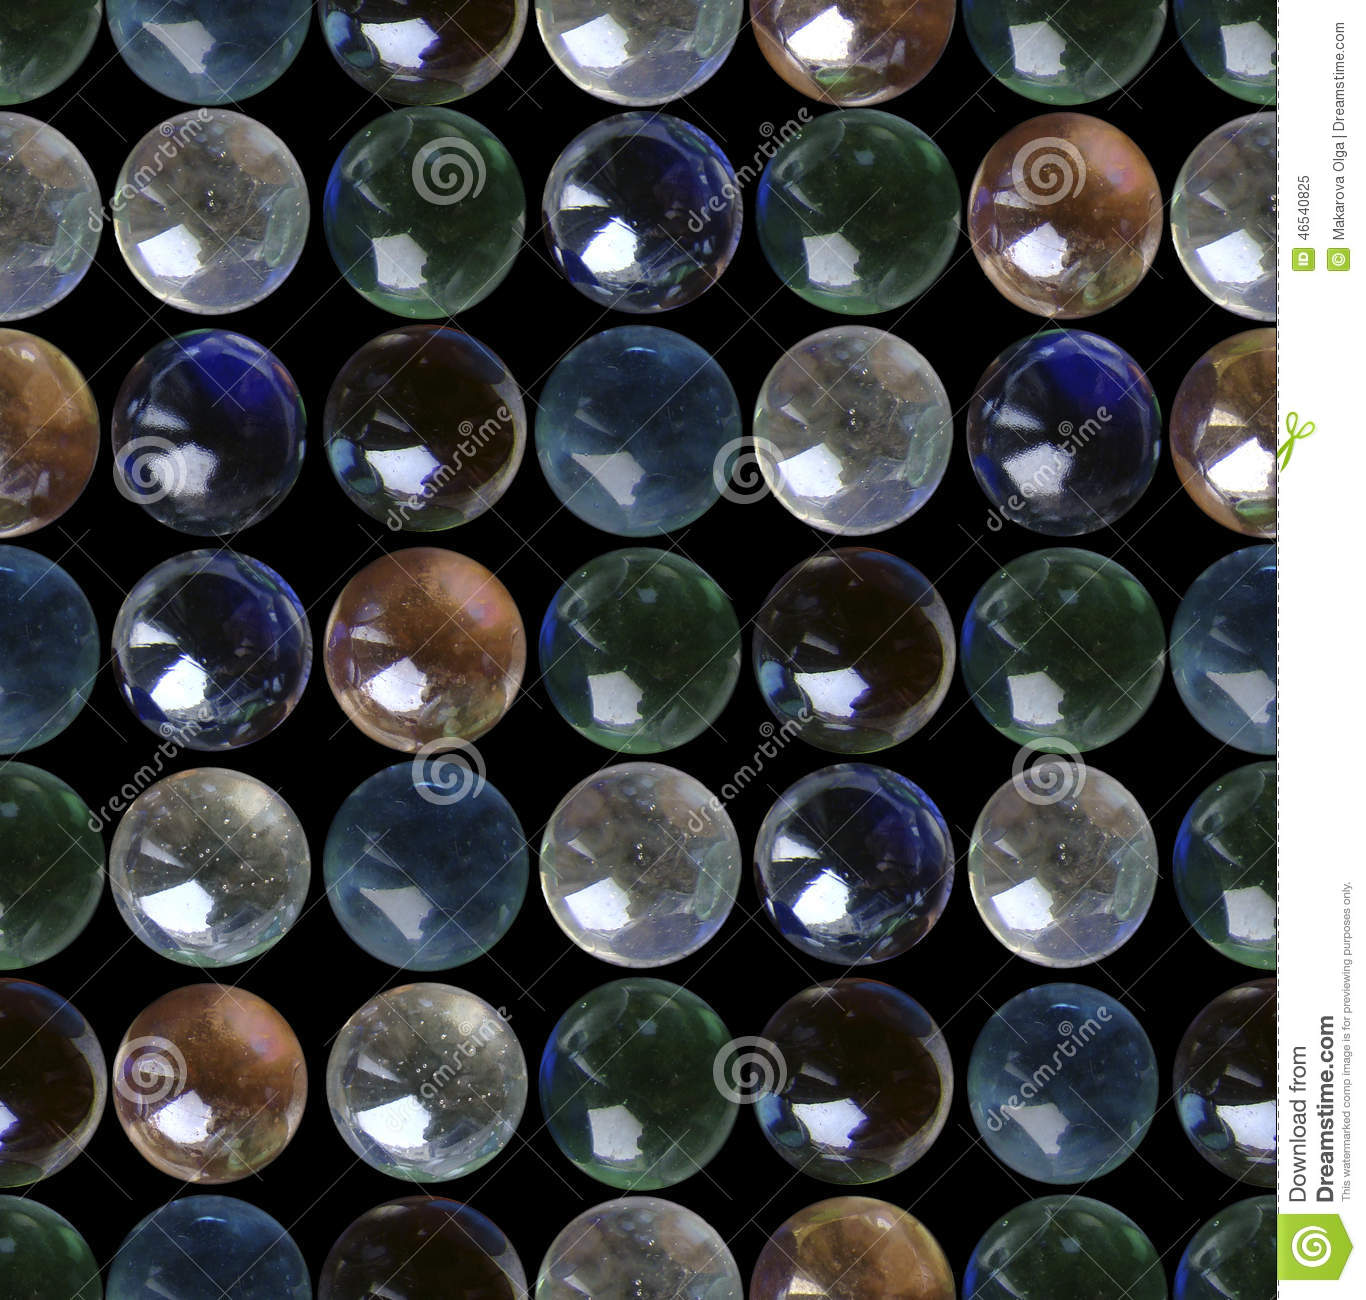 HQ Glass Marbles Wallpapers | File 231.62Kb